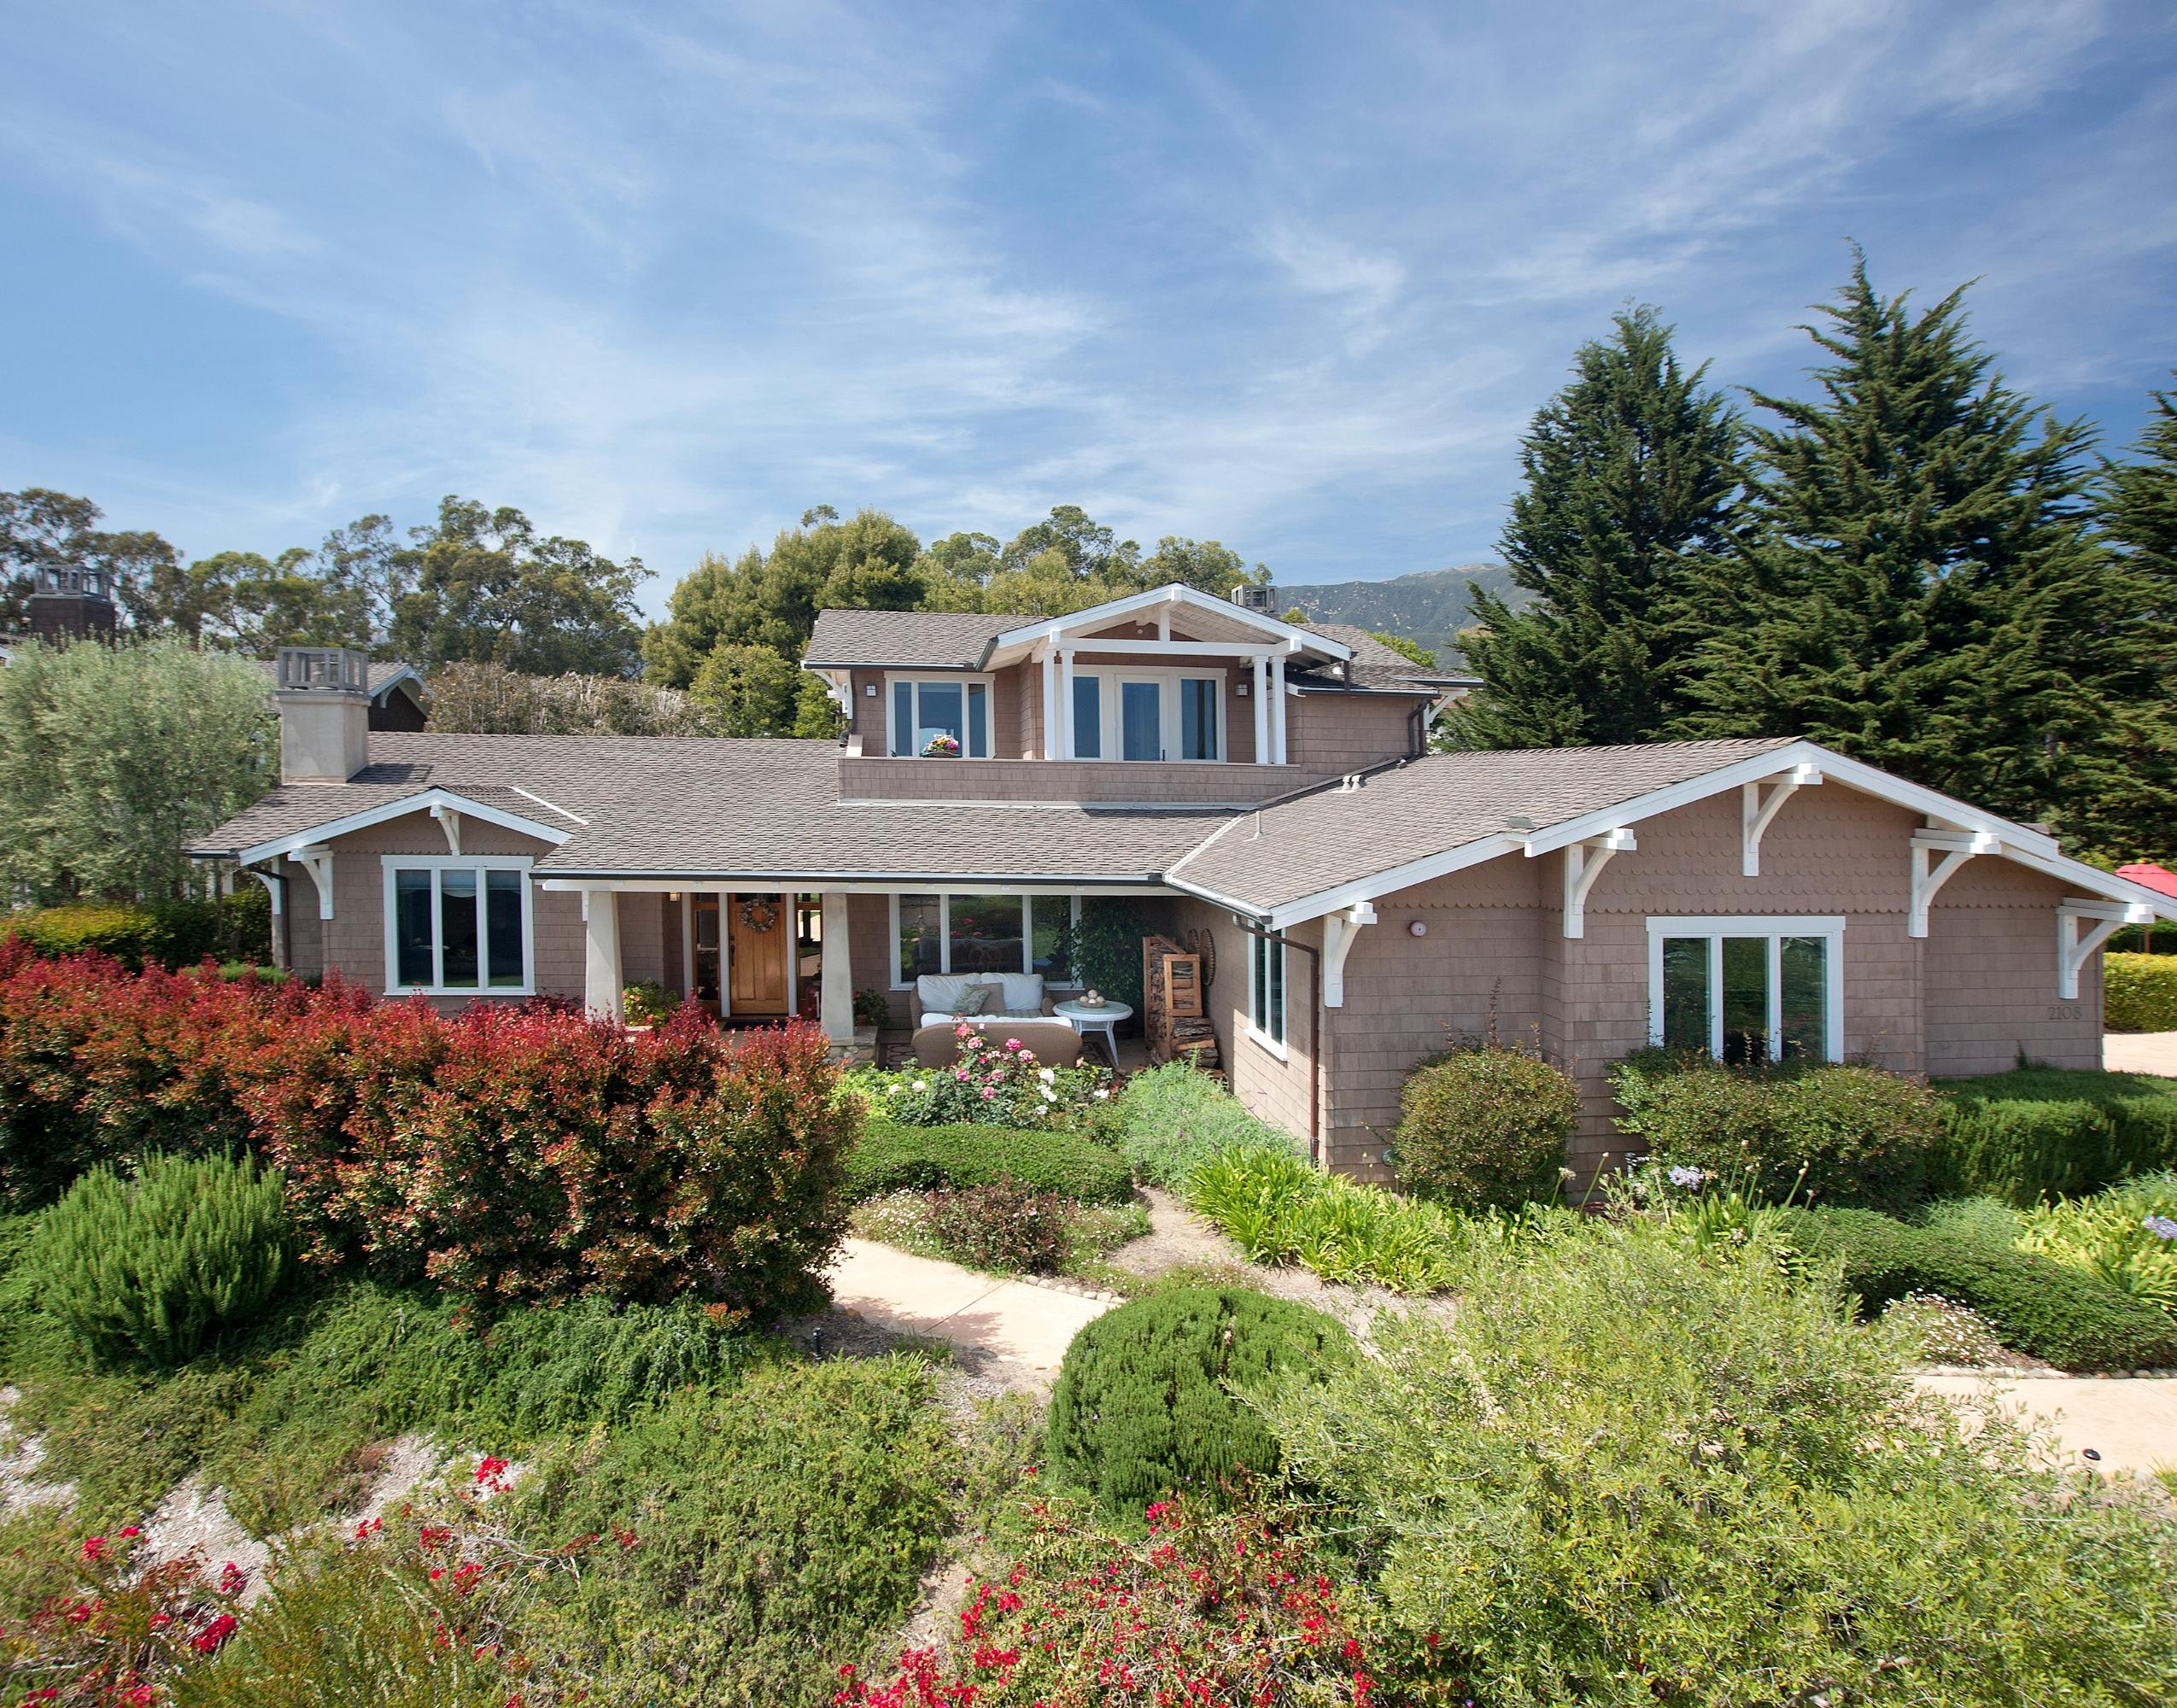 Property photo for 2108 Summerland Heights Ln Montecito, California 93108 - 14-322